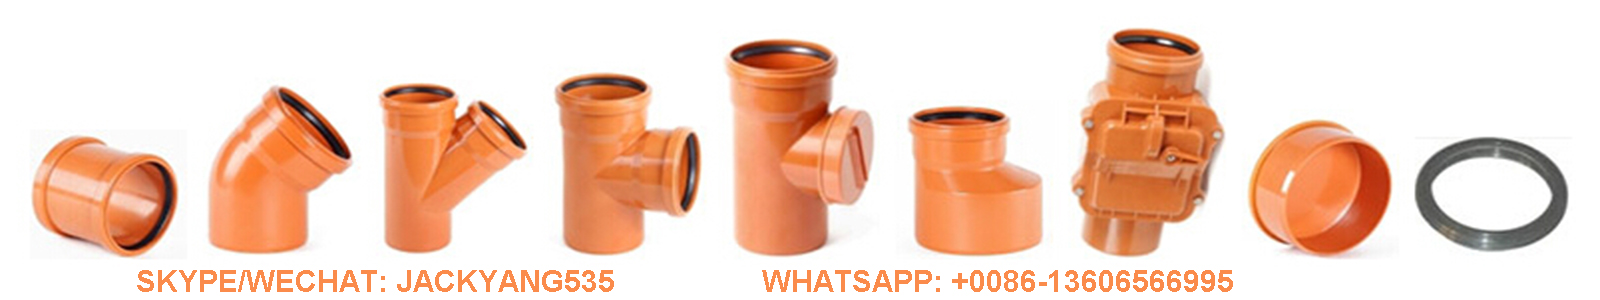 IRS Pipe Fittings, IRS Pipe, IRS Fittings C&N Aquatherm